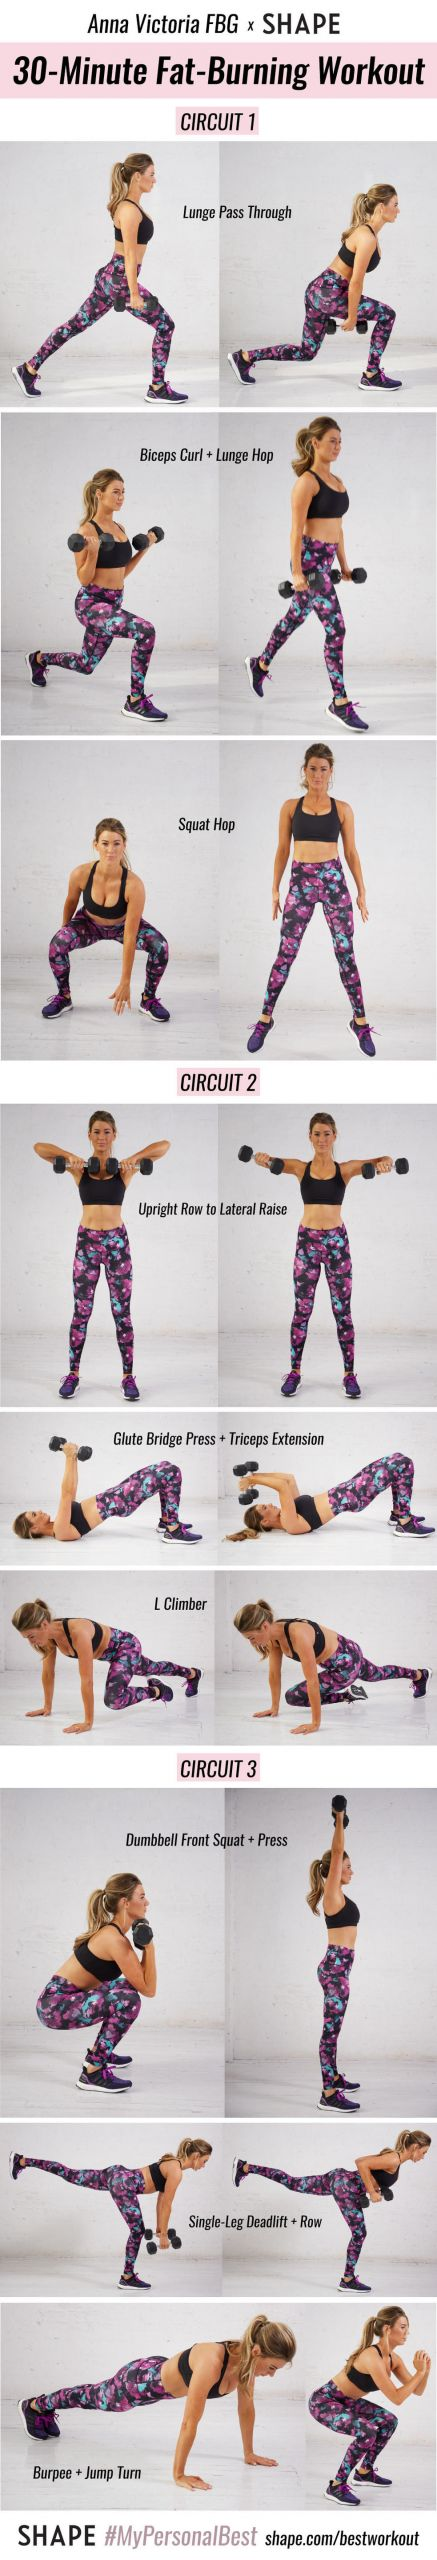 Fat Burning Workout Tiktok  This Fat Burning Workout By Anna Victoria Will Help You